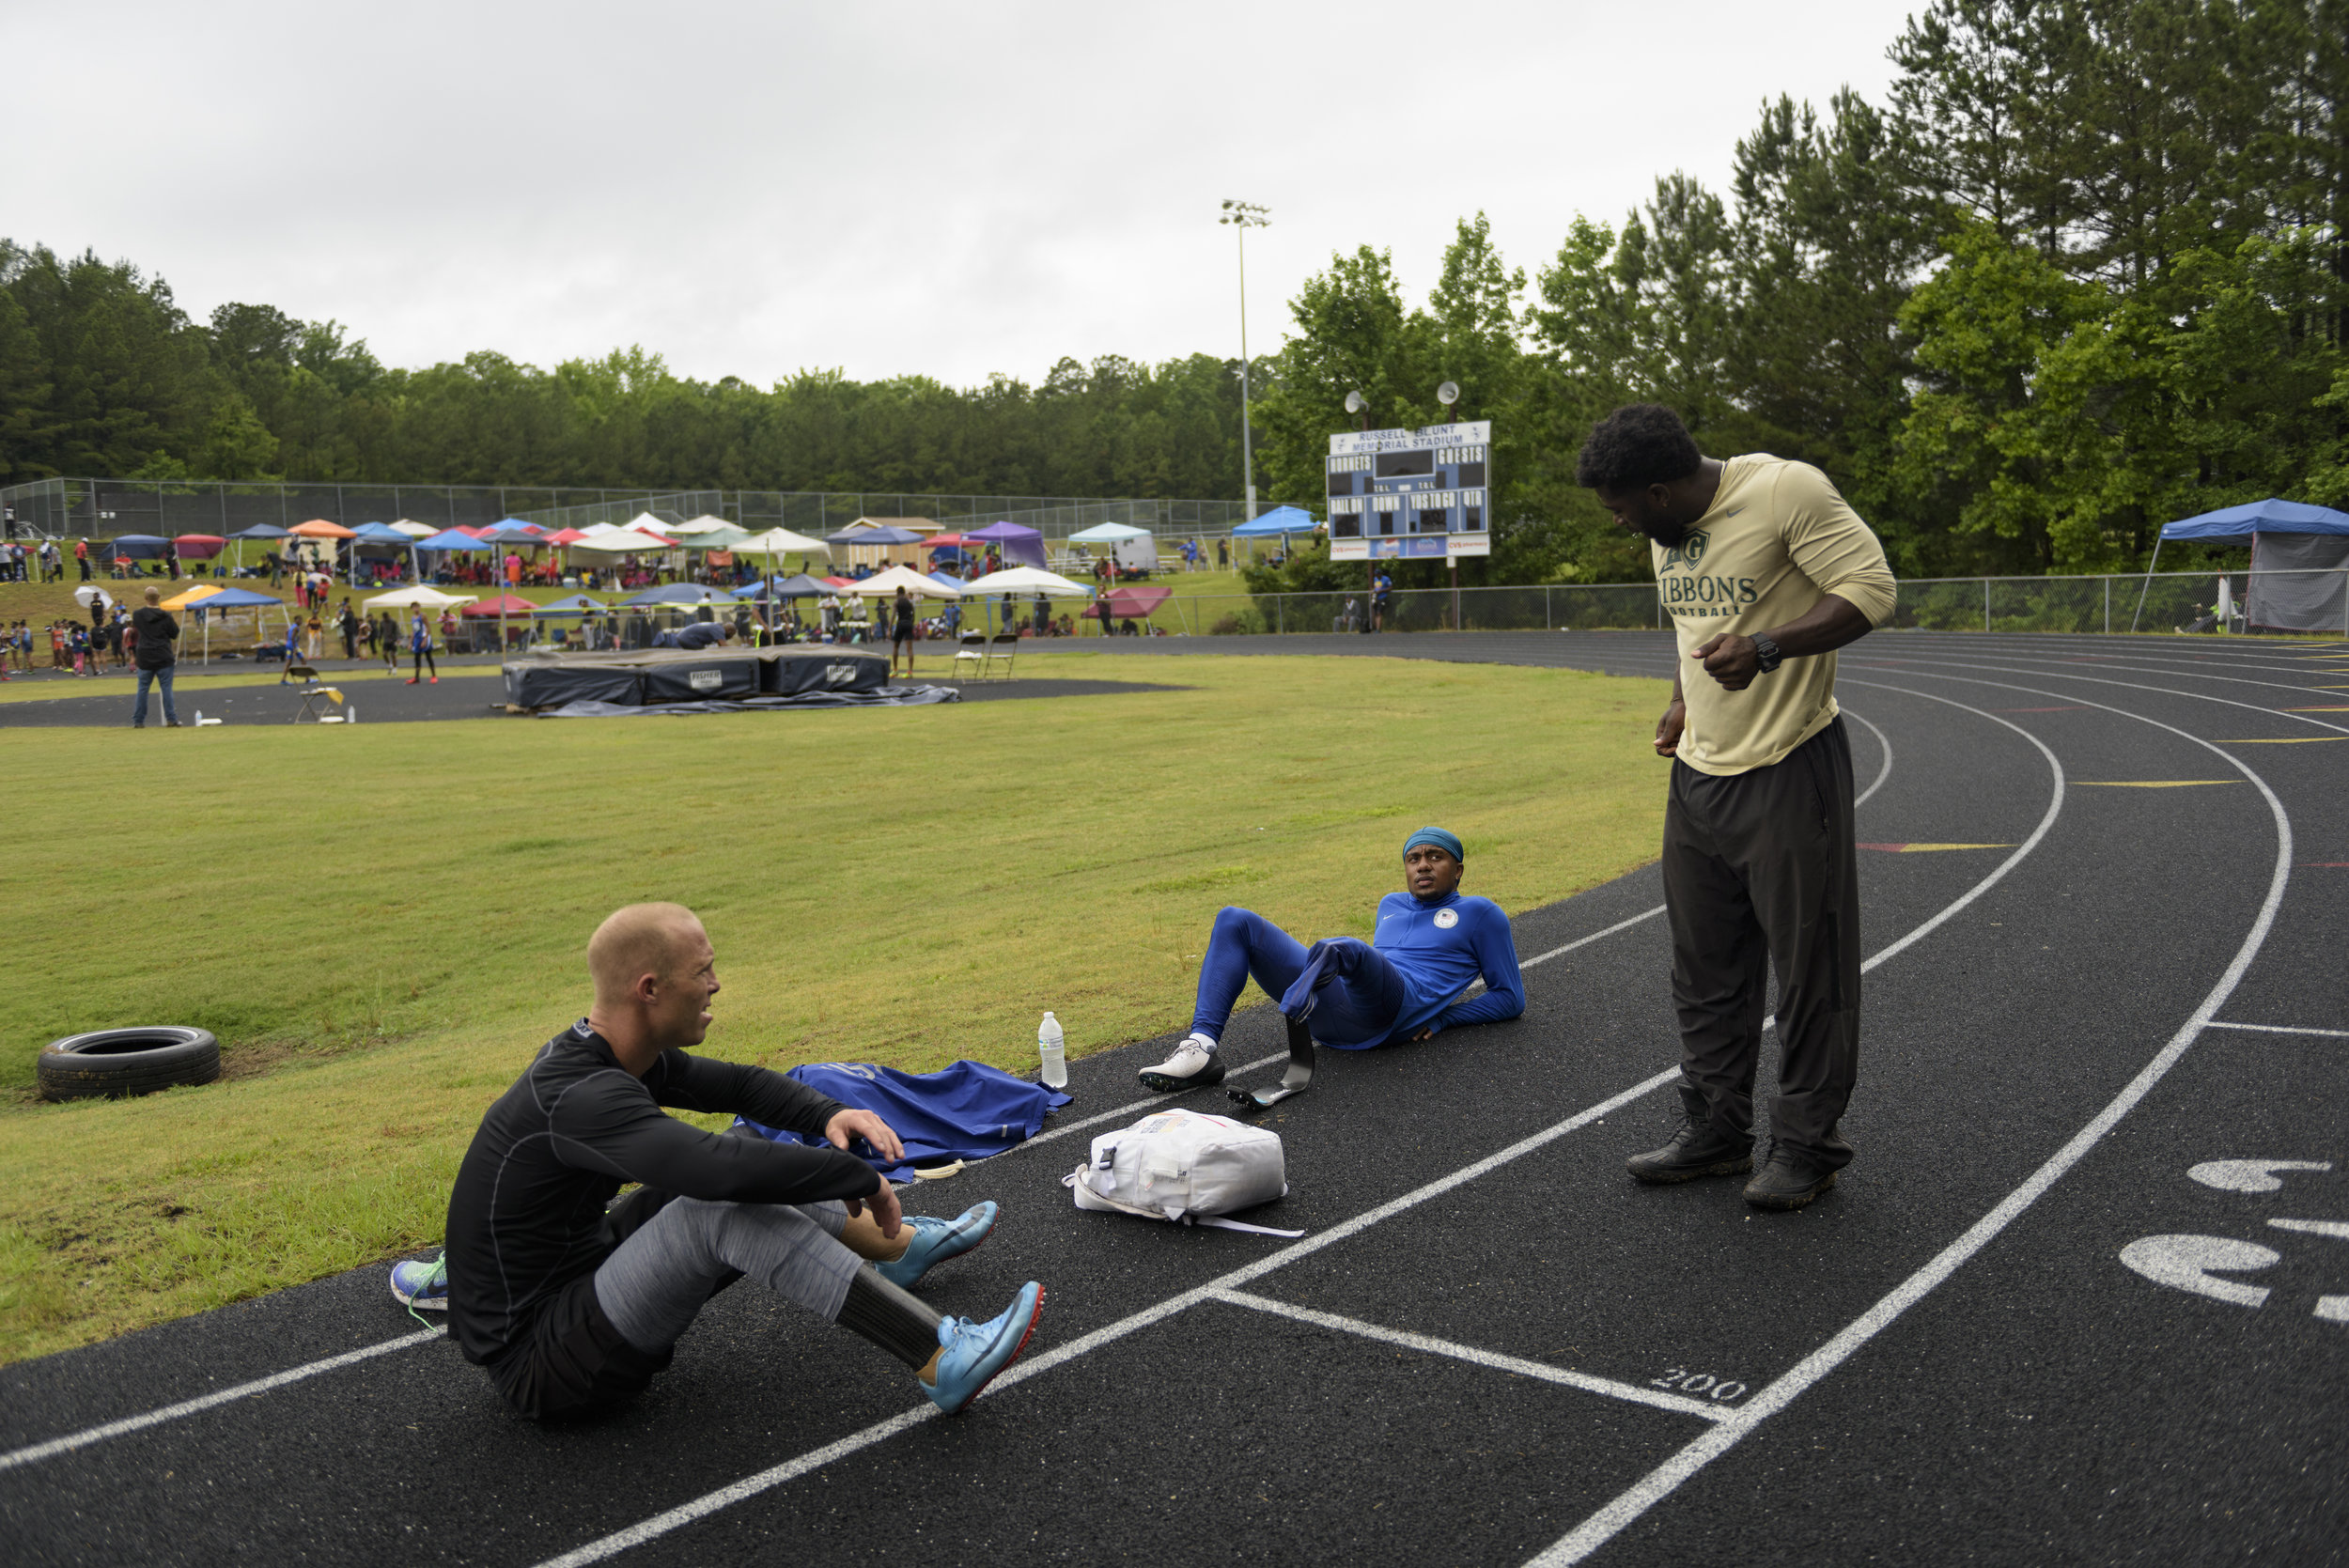 U.S. Paralympian Desmond Jackson receives final instructions from his coach before his race in Durham, NC on June 8, 2019.